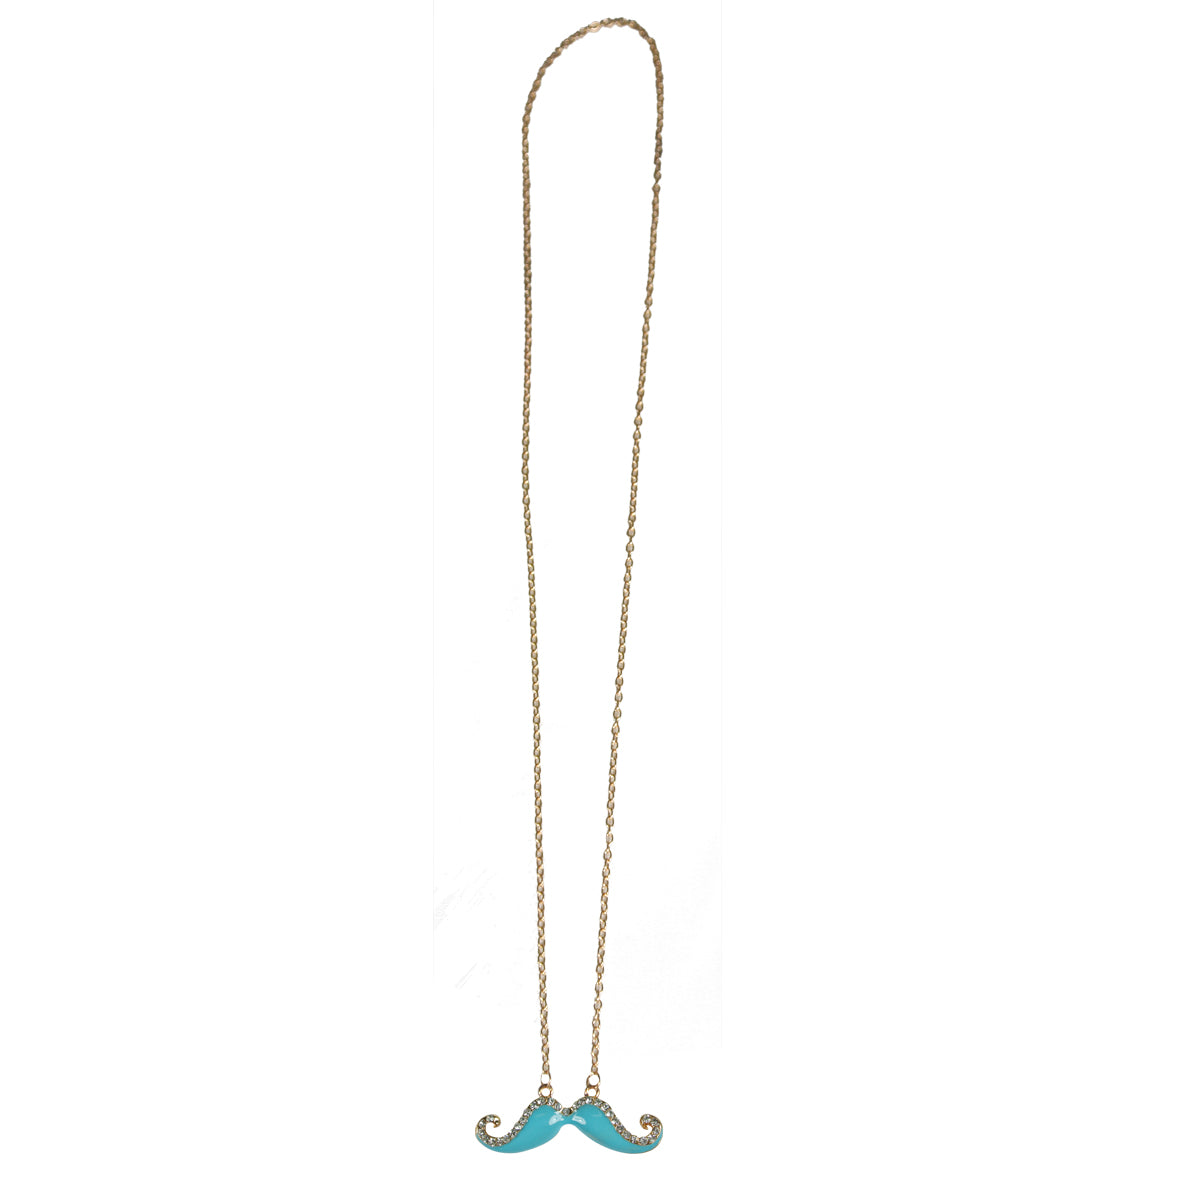 Wrapables Light Blue Handlebar Mustache Necklace with Crystals